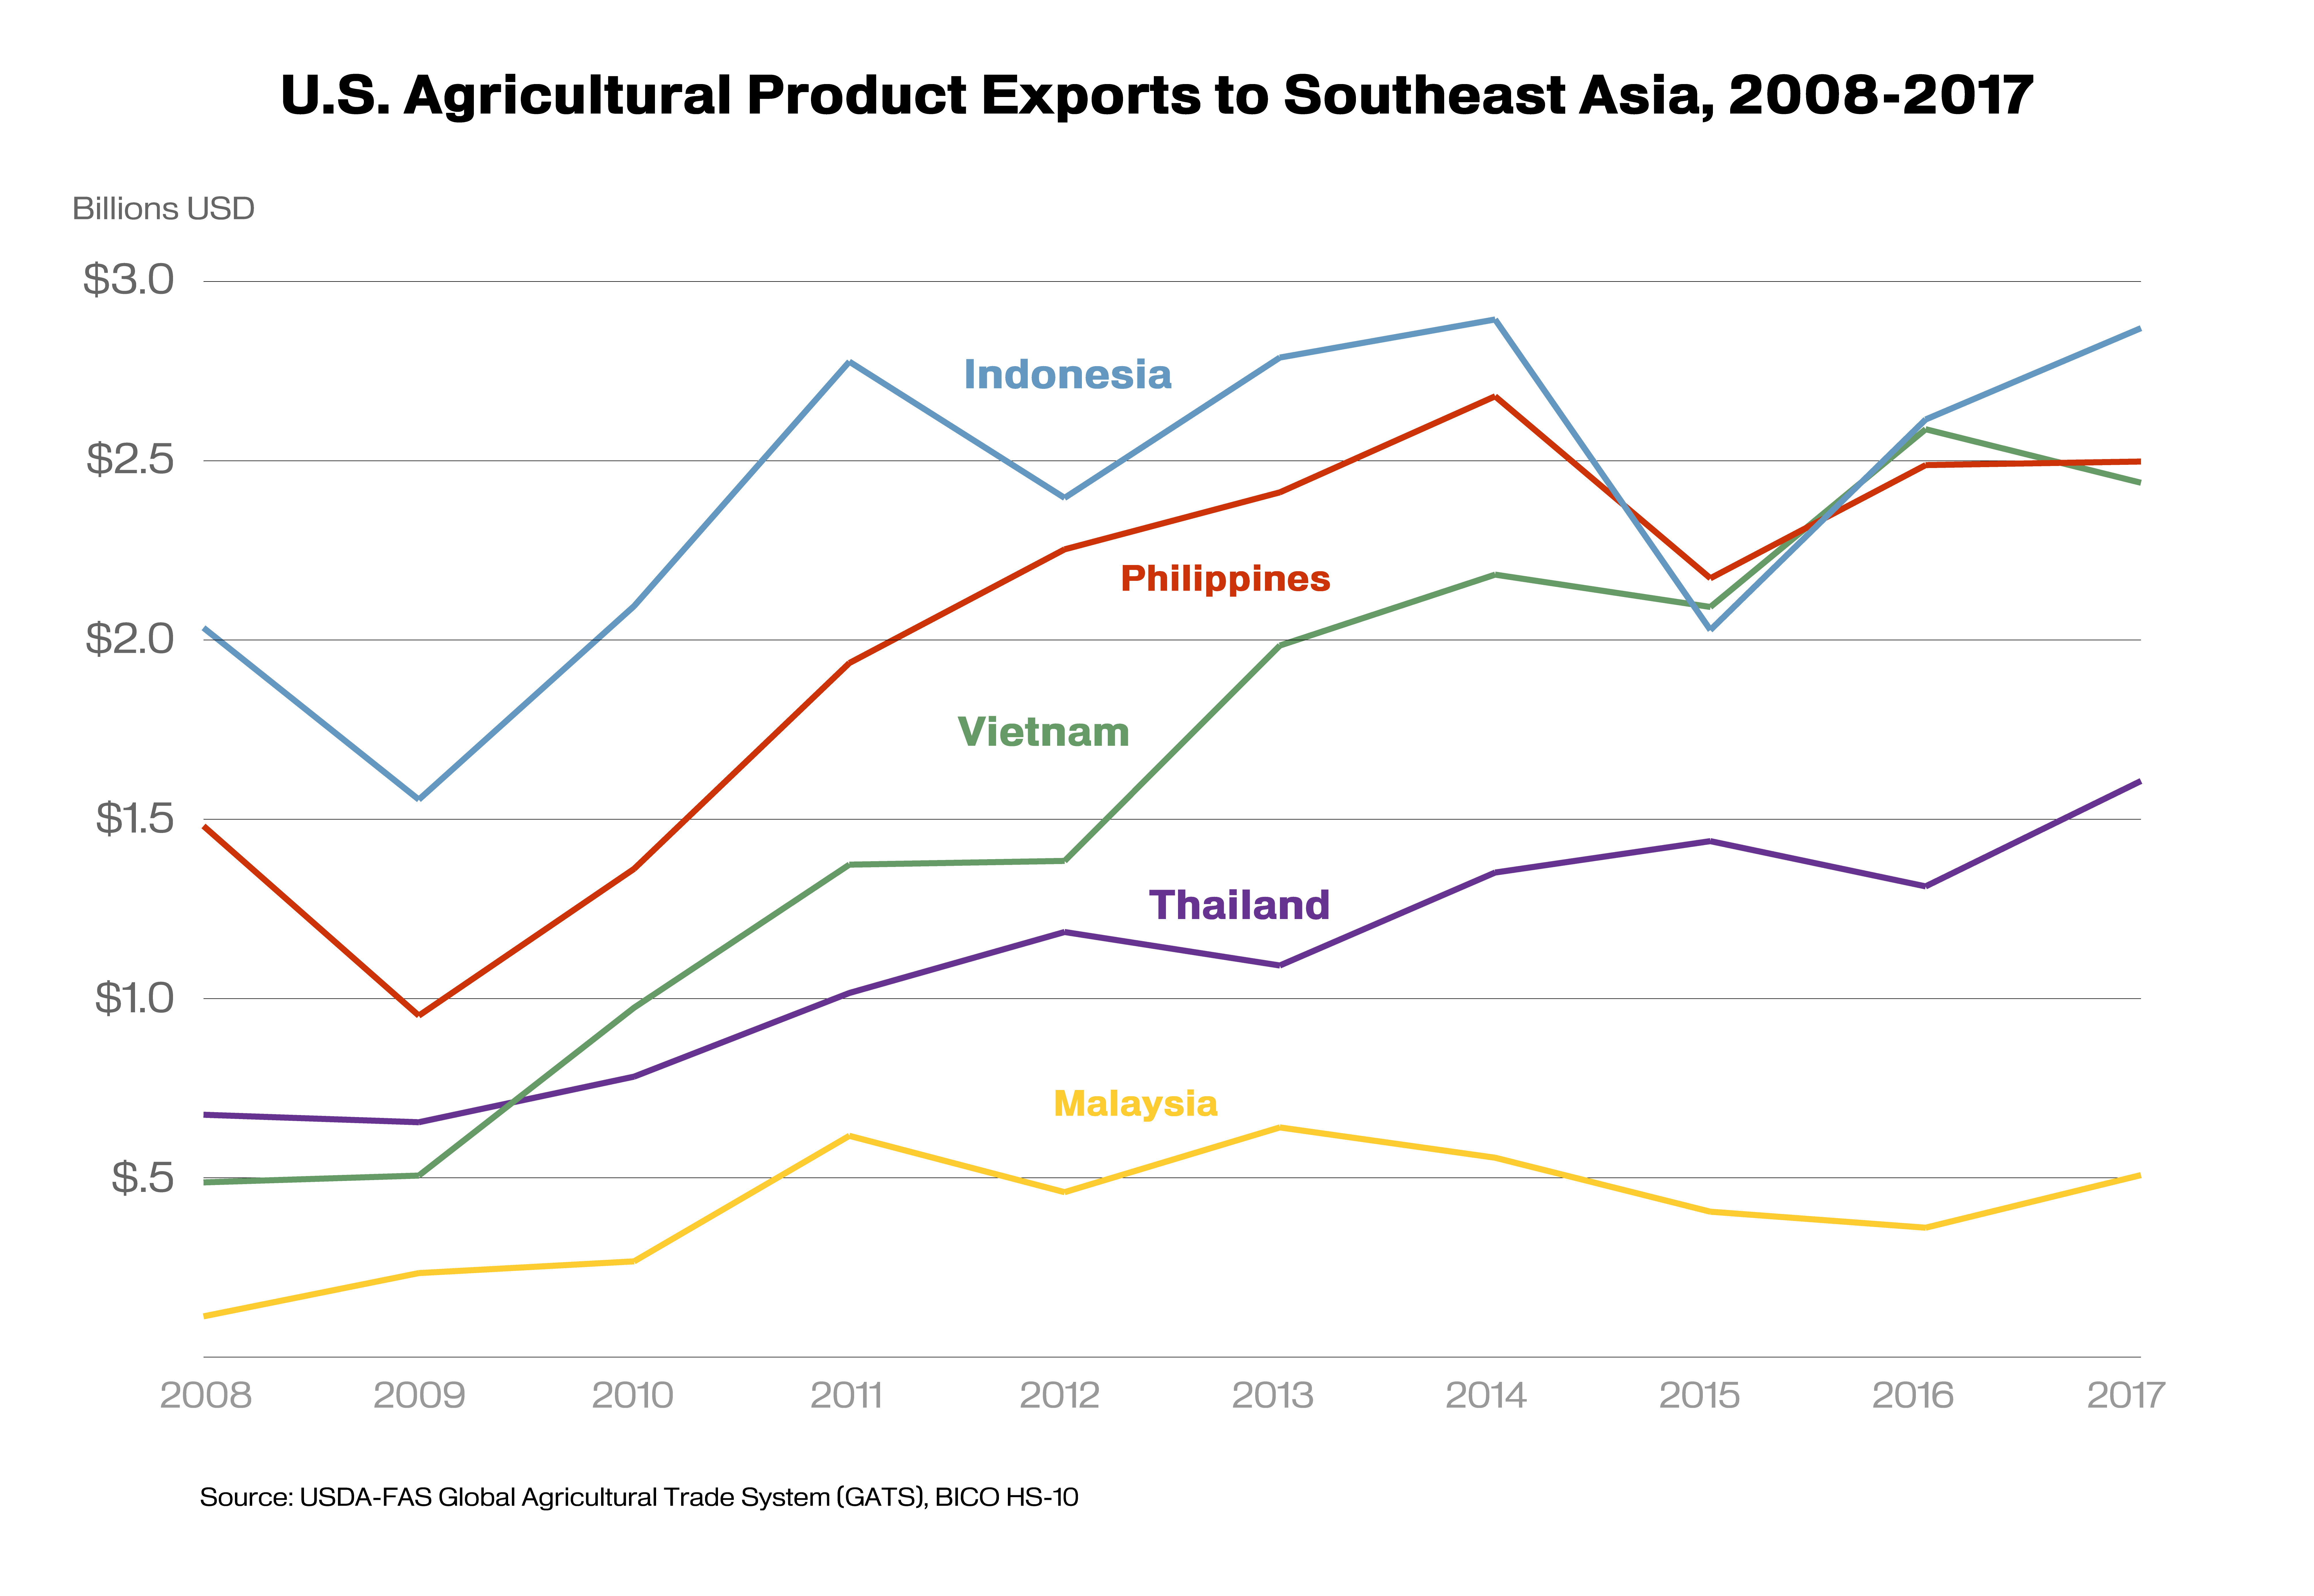 Line graph showing the growth of U.S. agricultural exports to Indonesia, Philippines, Malaysia, Vietnam, and Thailand from 2008-2017.